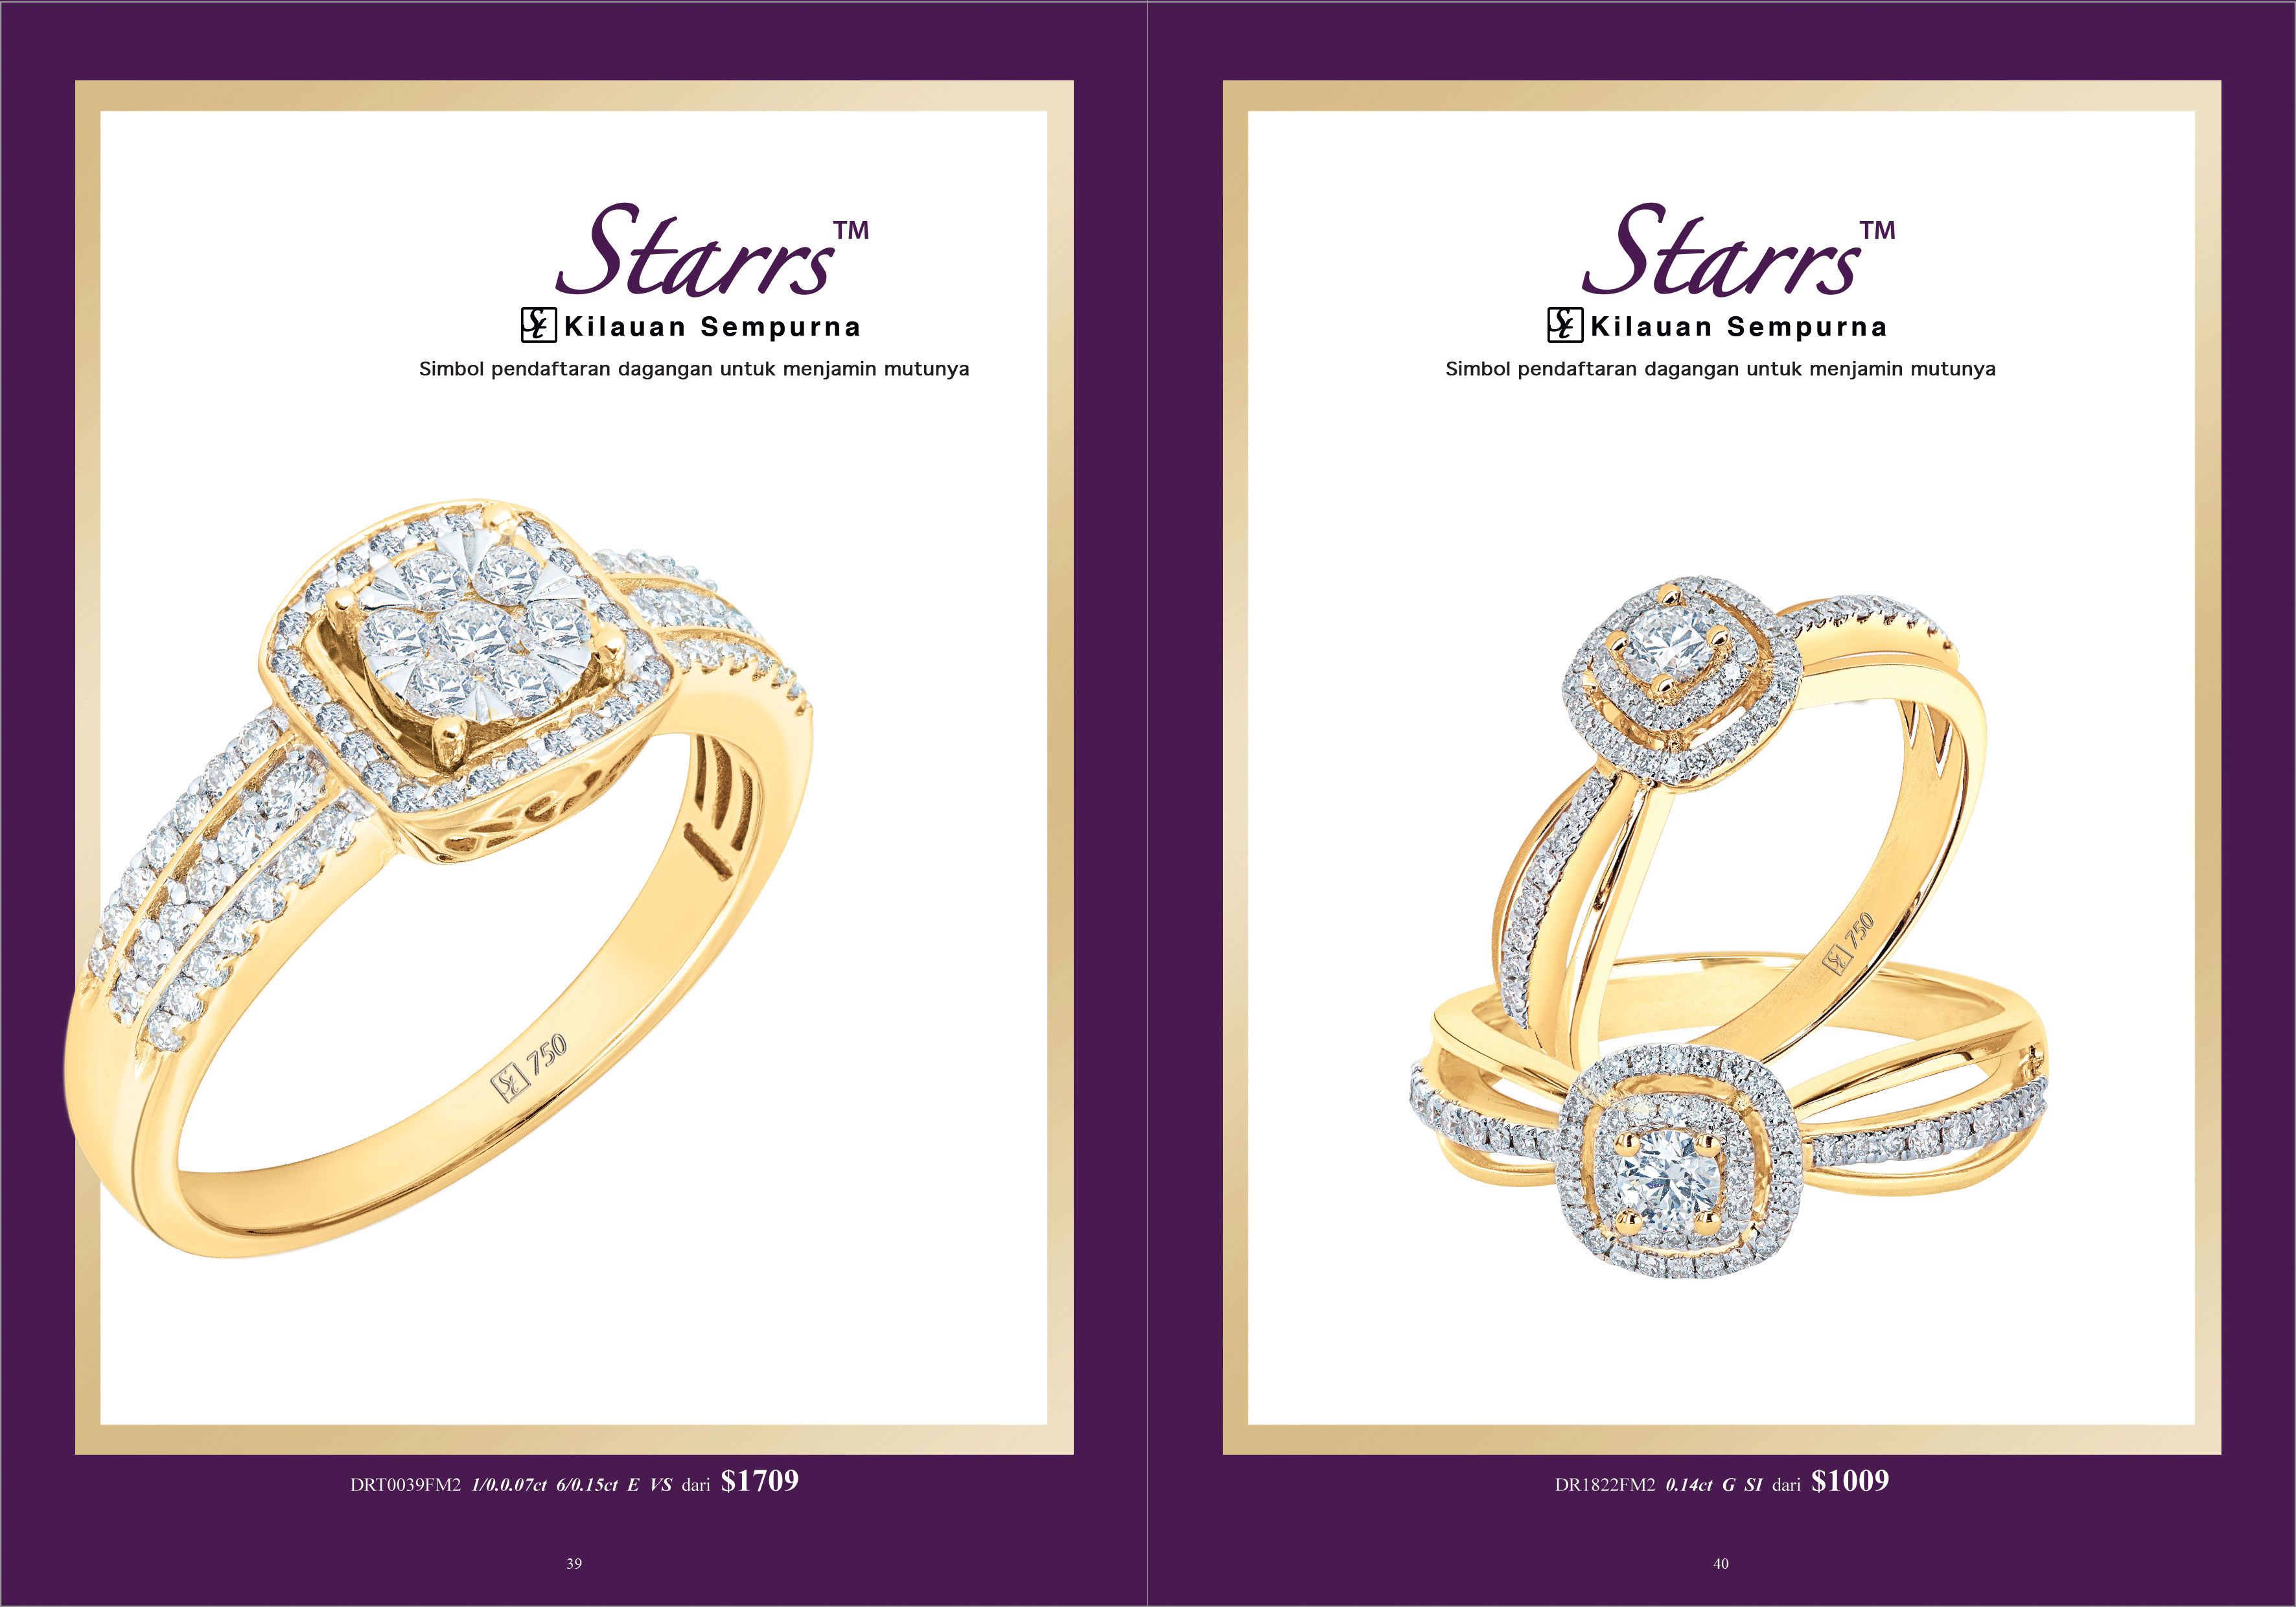 Ming Seng starrs diamond rings